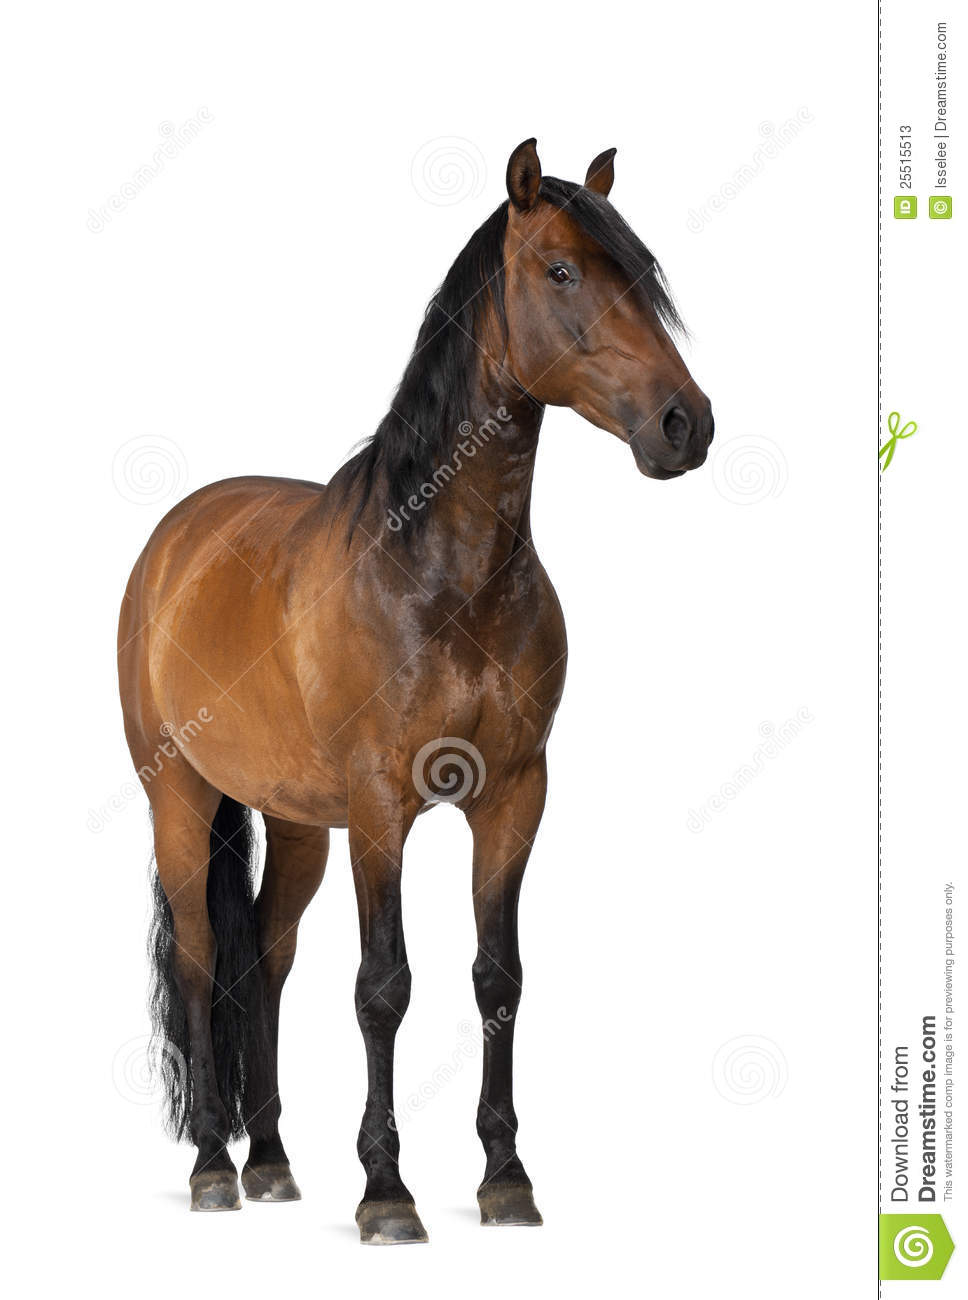 A List of Horse Movies of the 21st Century